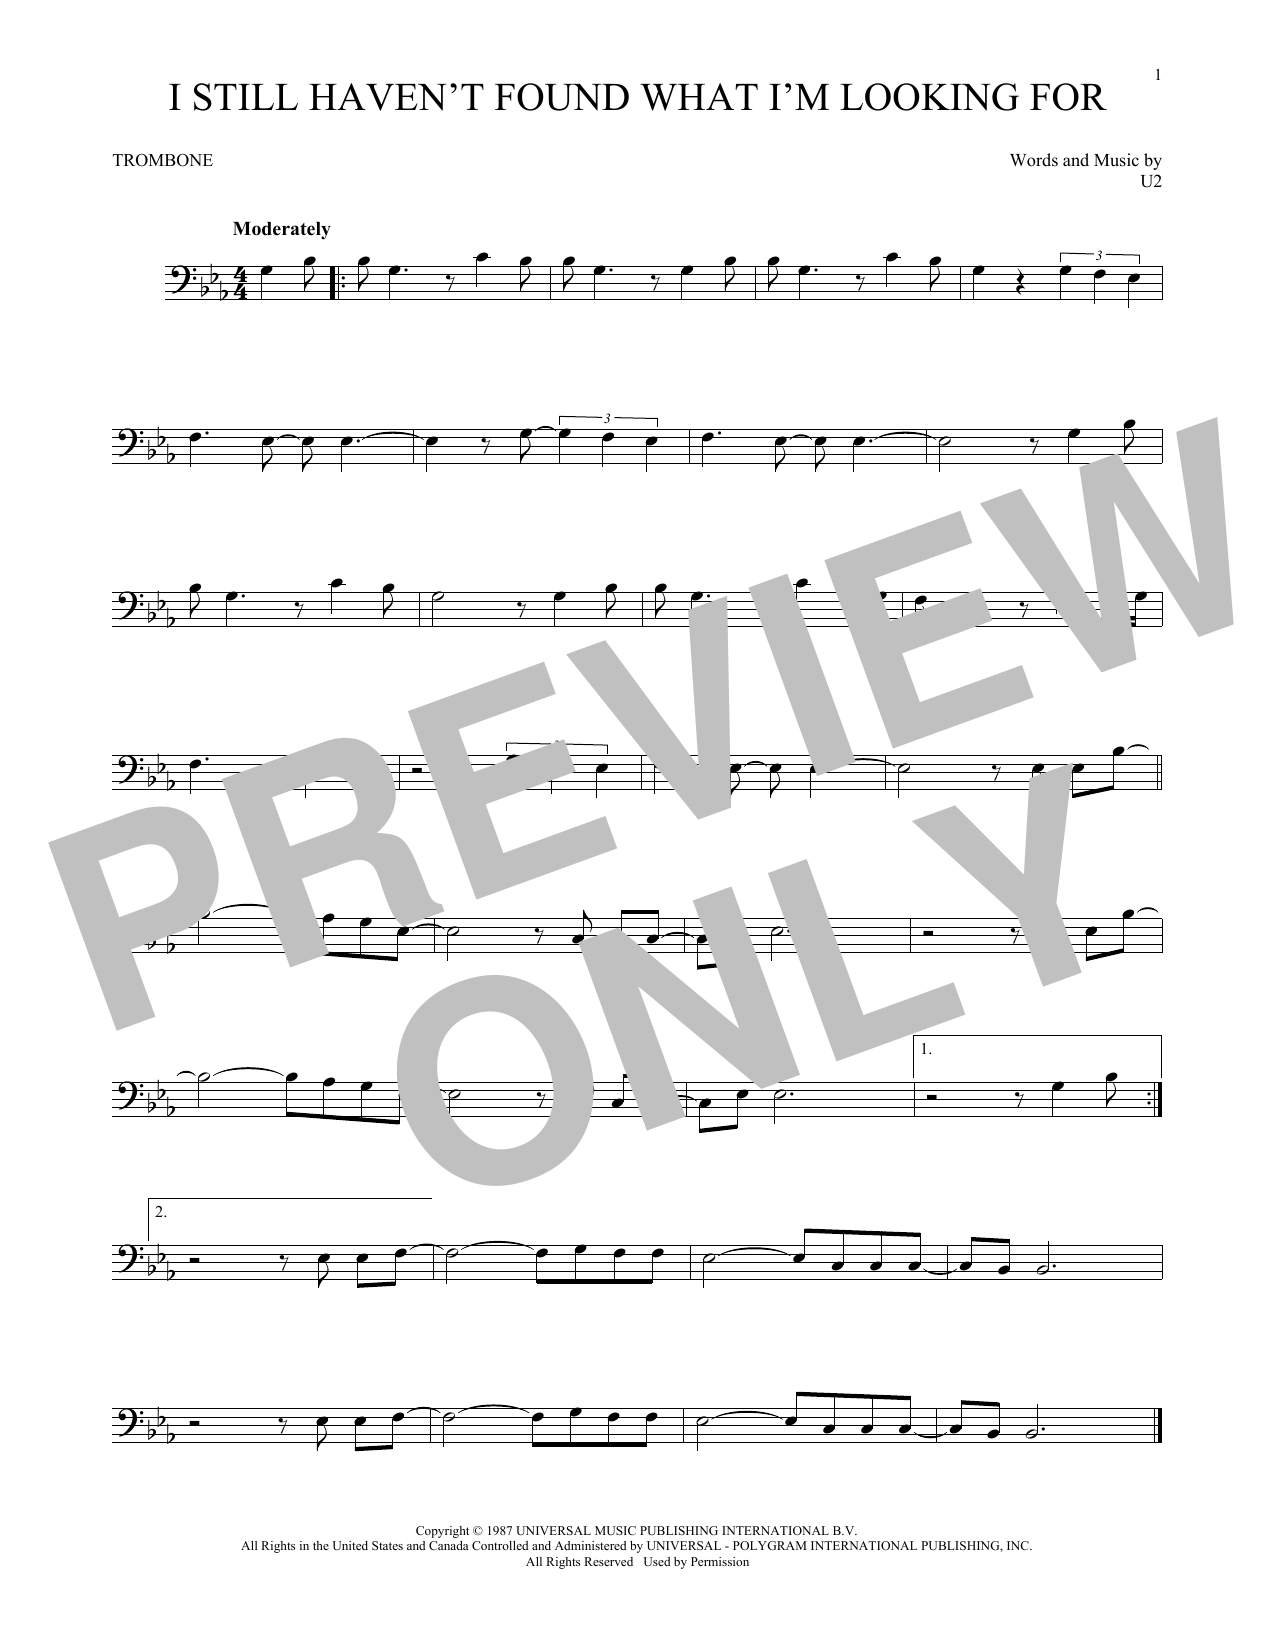 I Still Haven't Found What I'm Looking For (Trombone Solo)